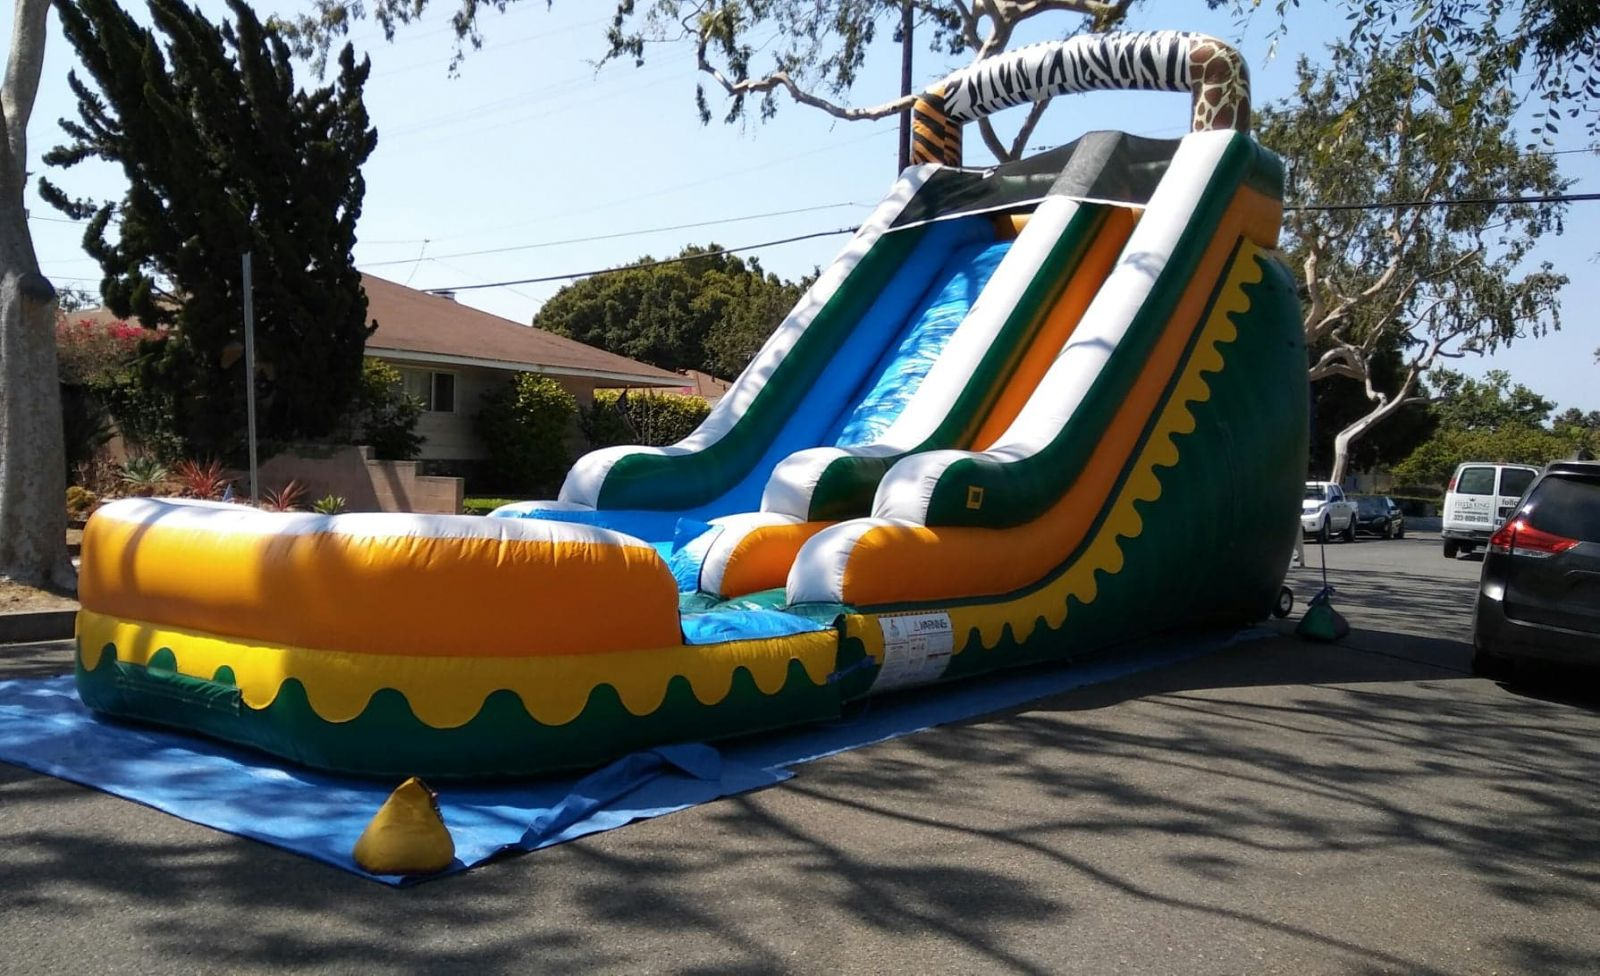 18ft Tall Big Water Slide Rental in Los Angeles